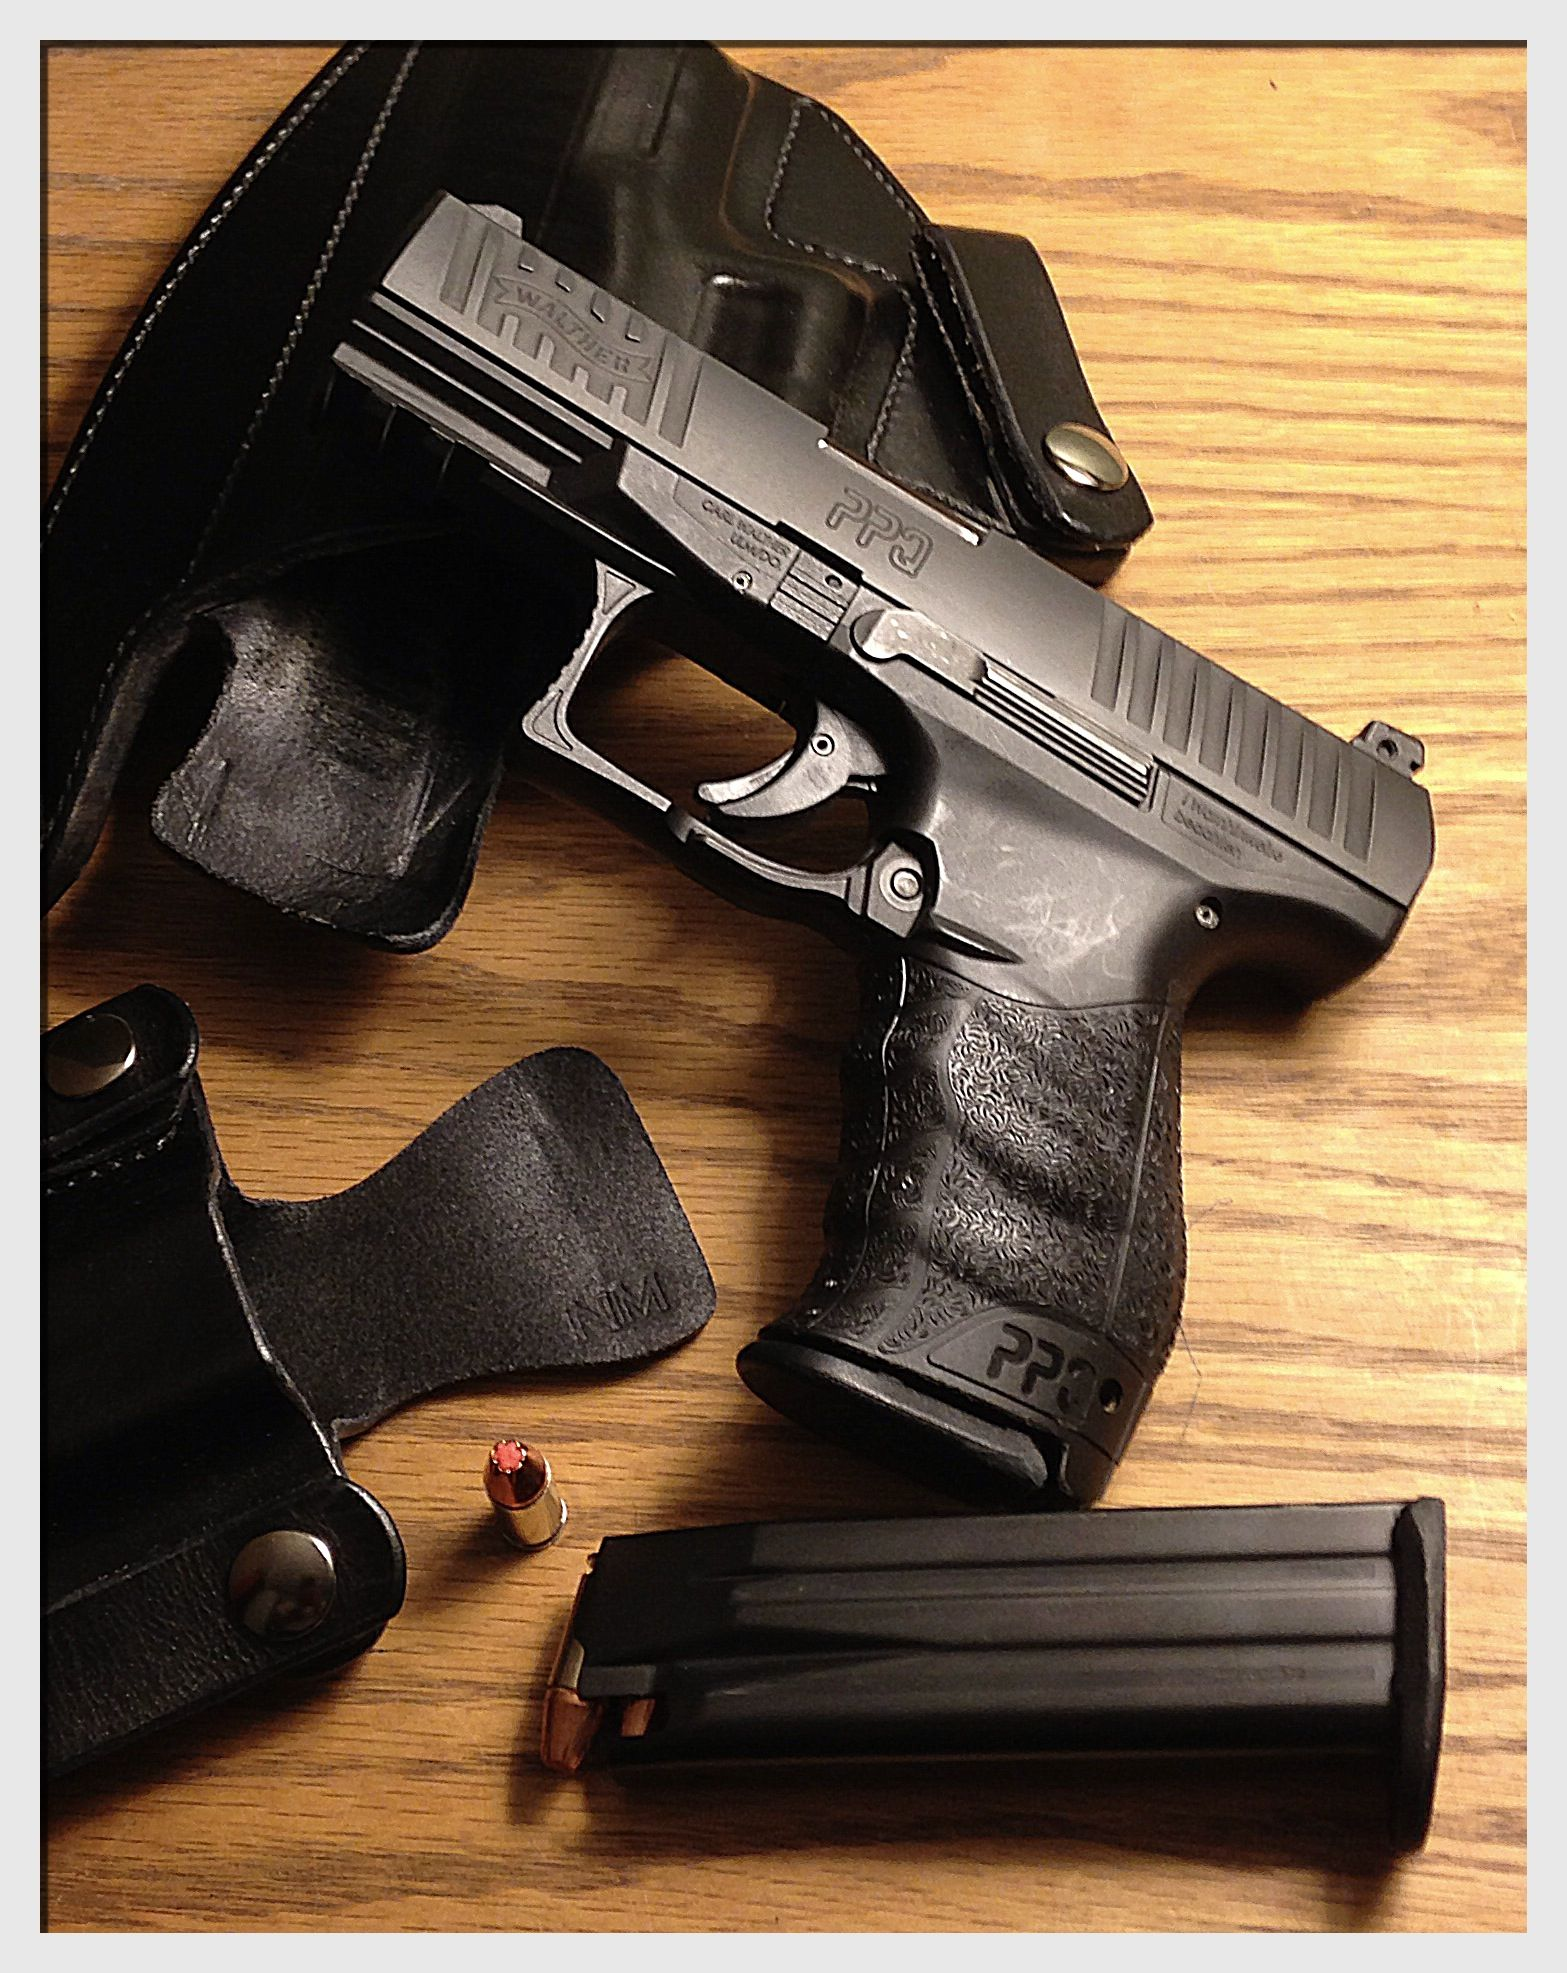 Walther PPQ 9mm  I LOVE this gun! It's part of my EDC and I don't